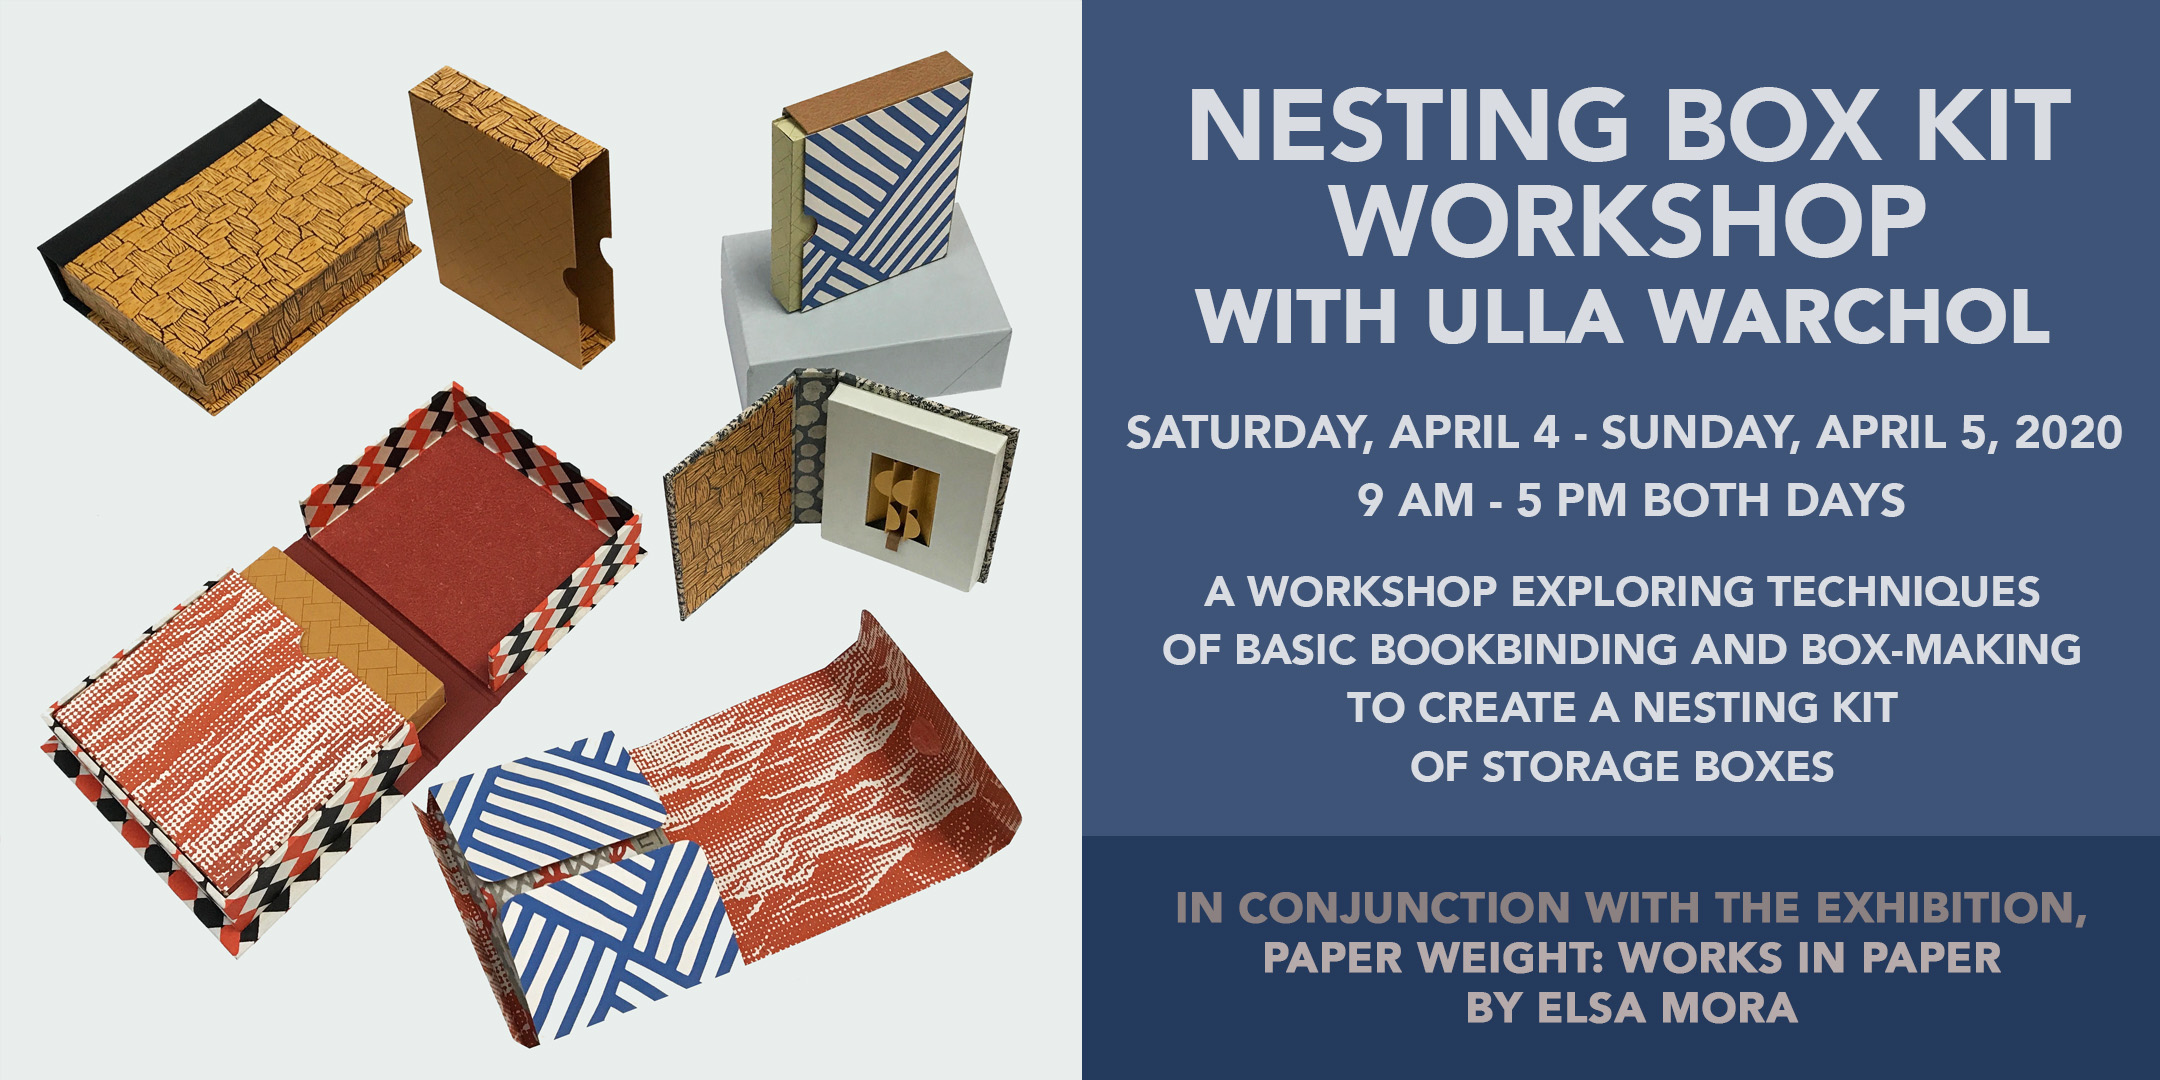 Nesting Box Kit Workshop with Ulla Warchol @ ArtYard | Frenchtown | New Jersey | United States